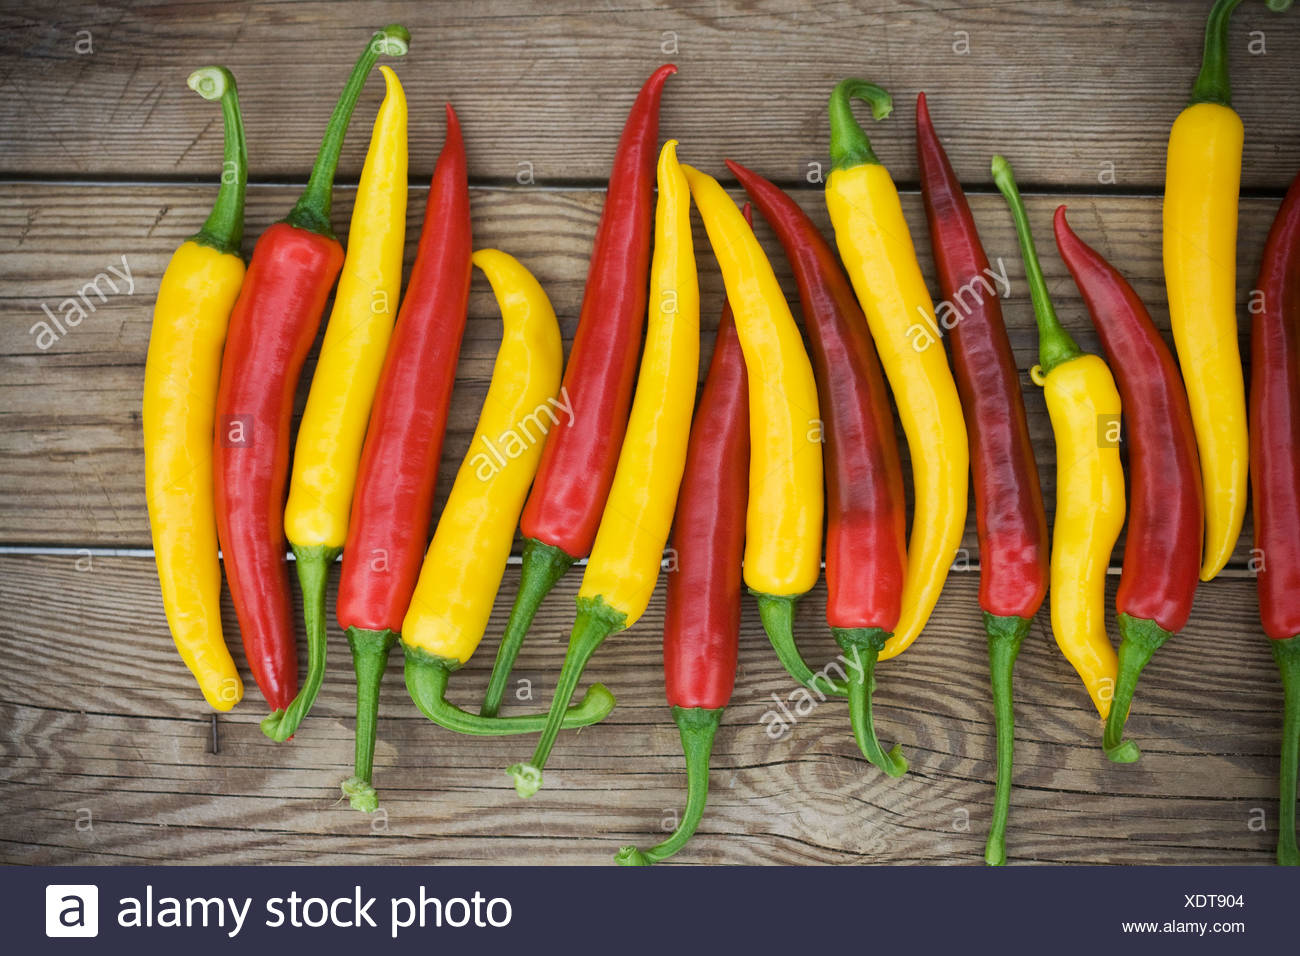 Row of chilli peppers on wooden board - Stock Image